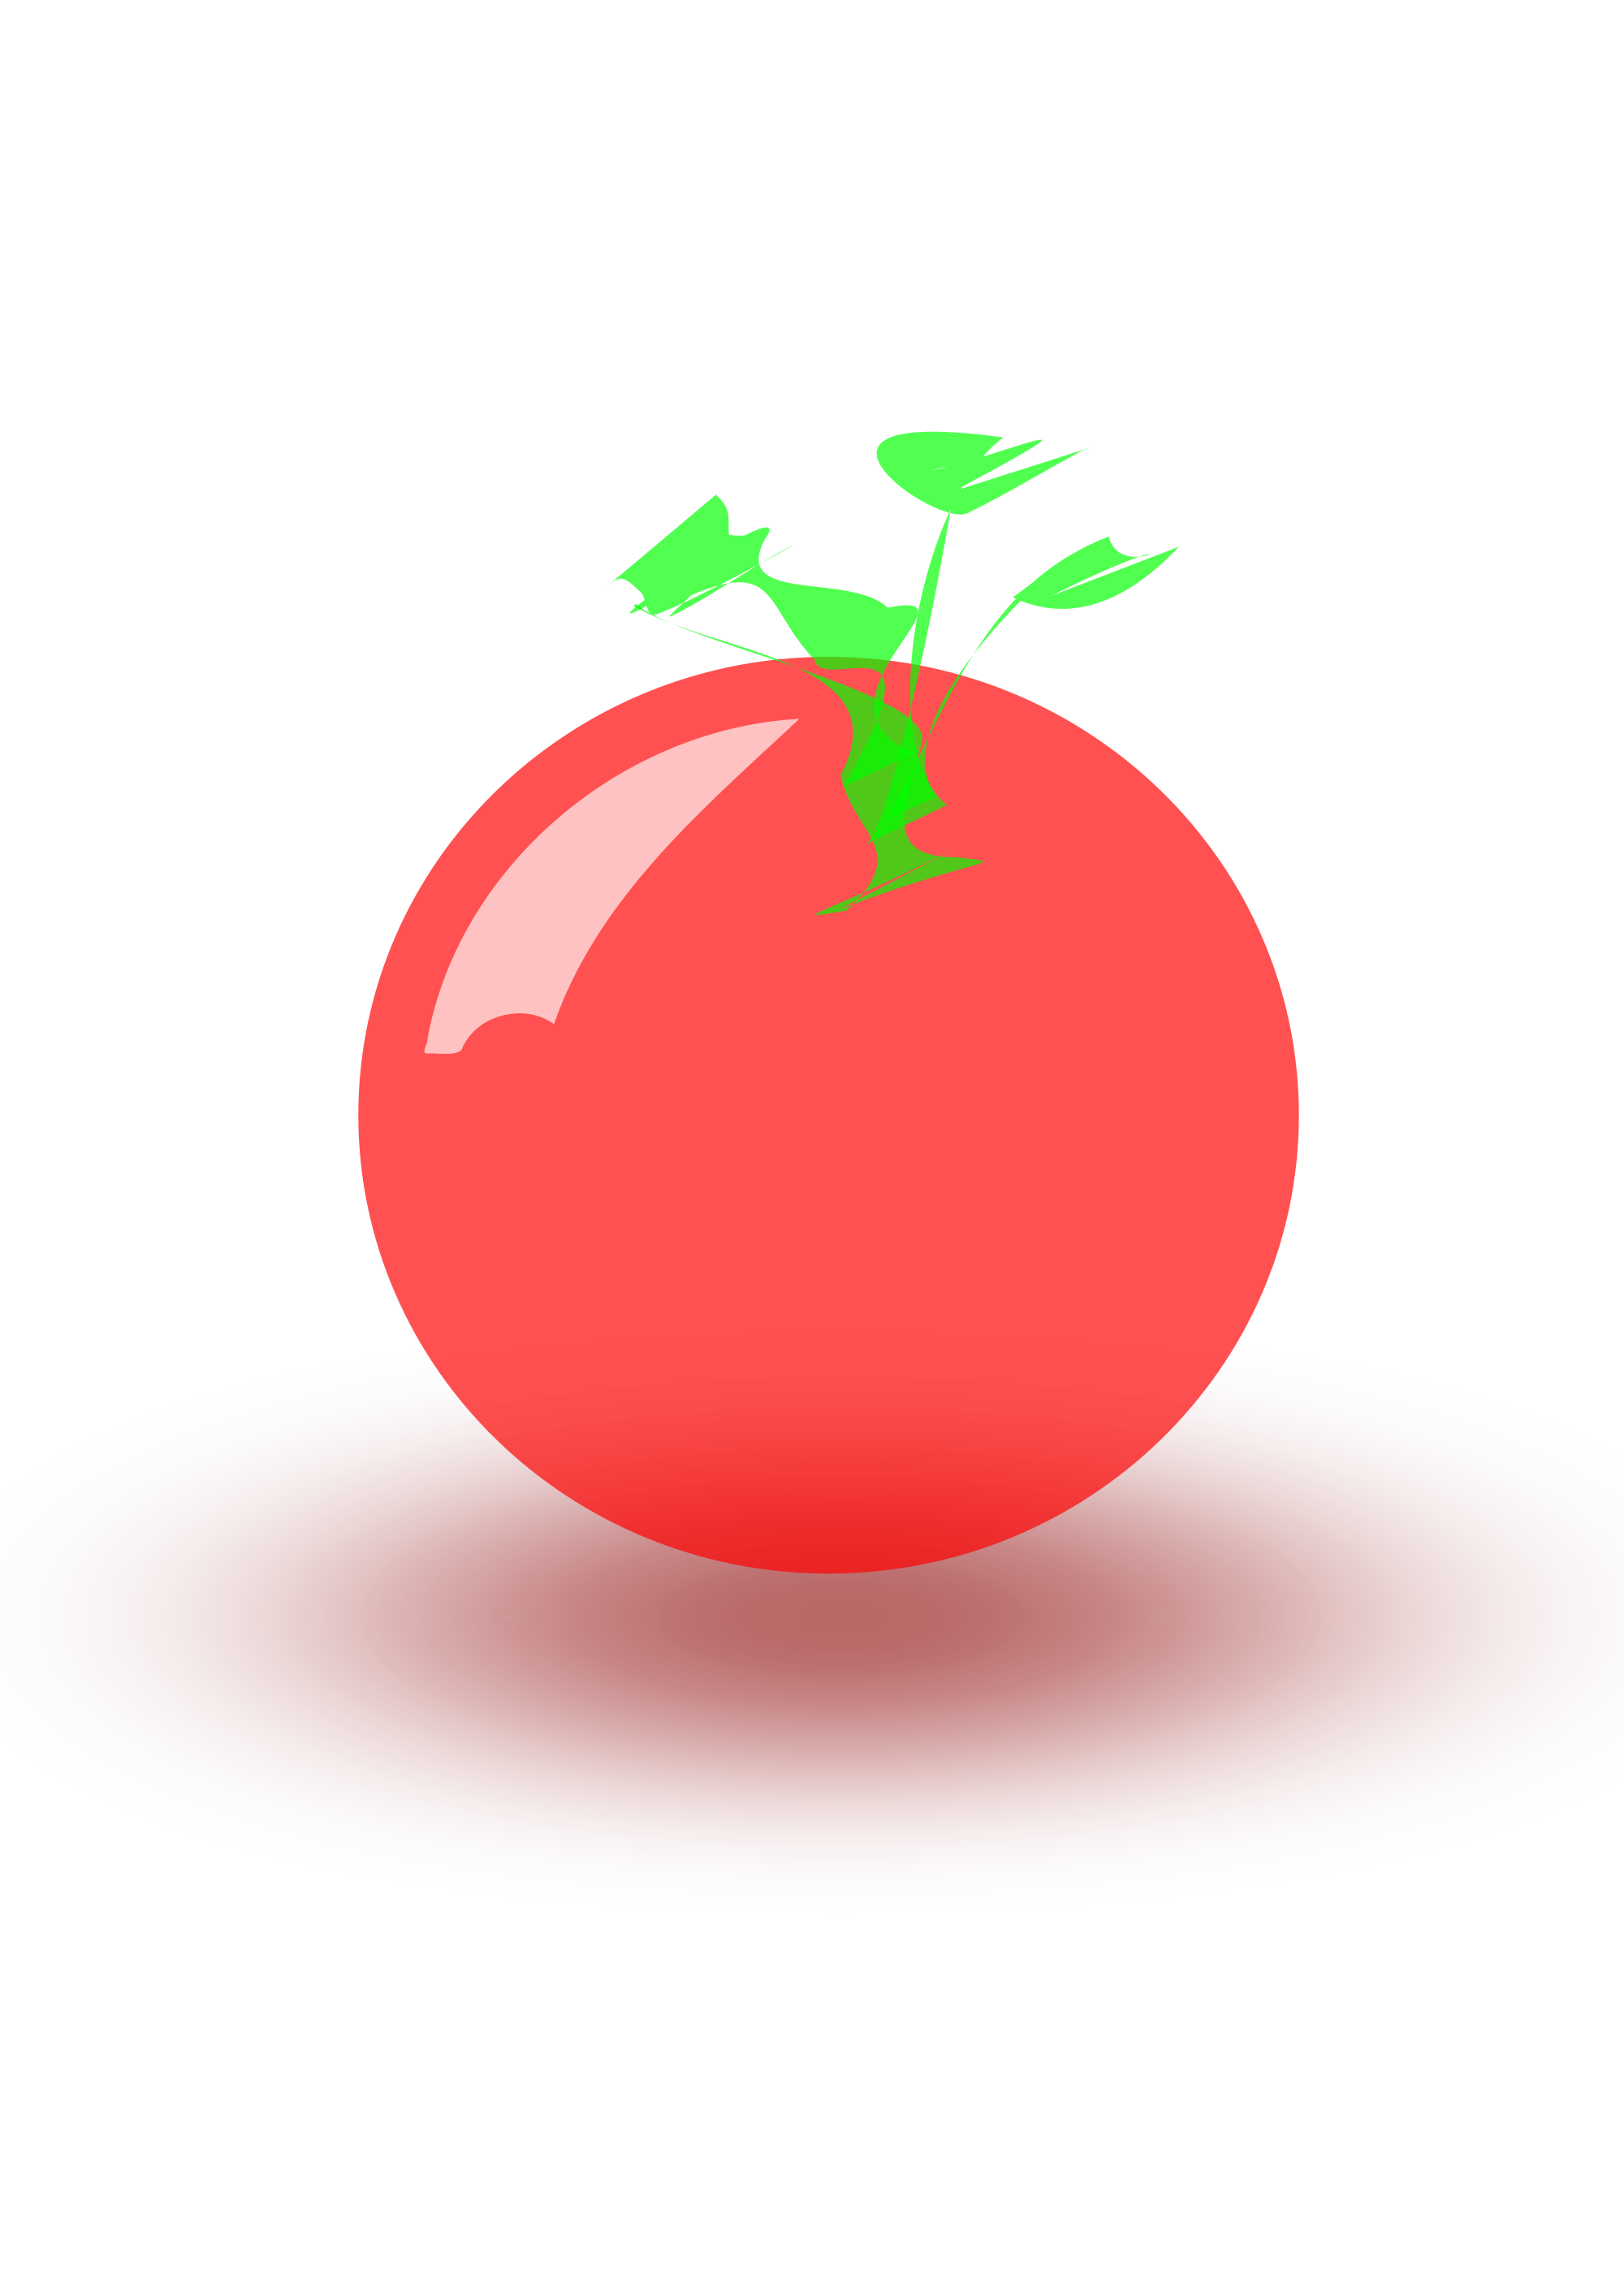 File inkscapetutorial tomato final. Tomatoes clipart svg